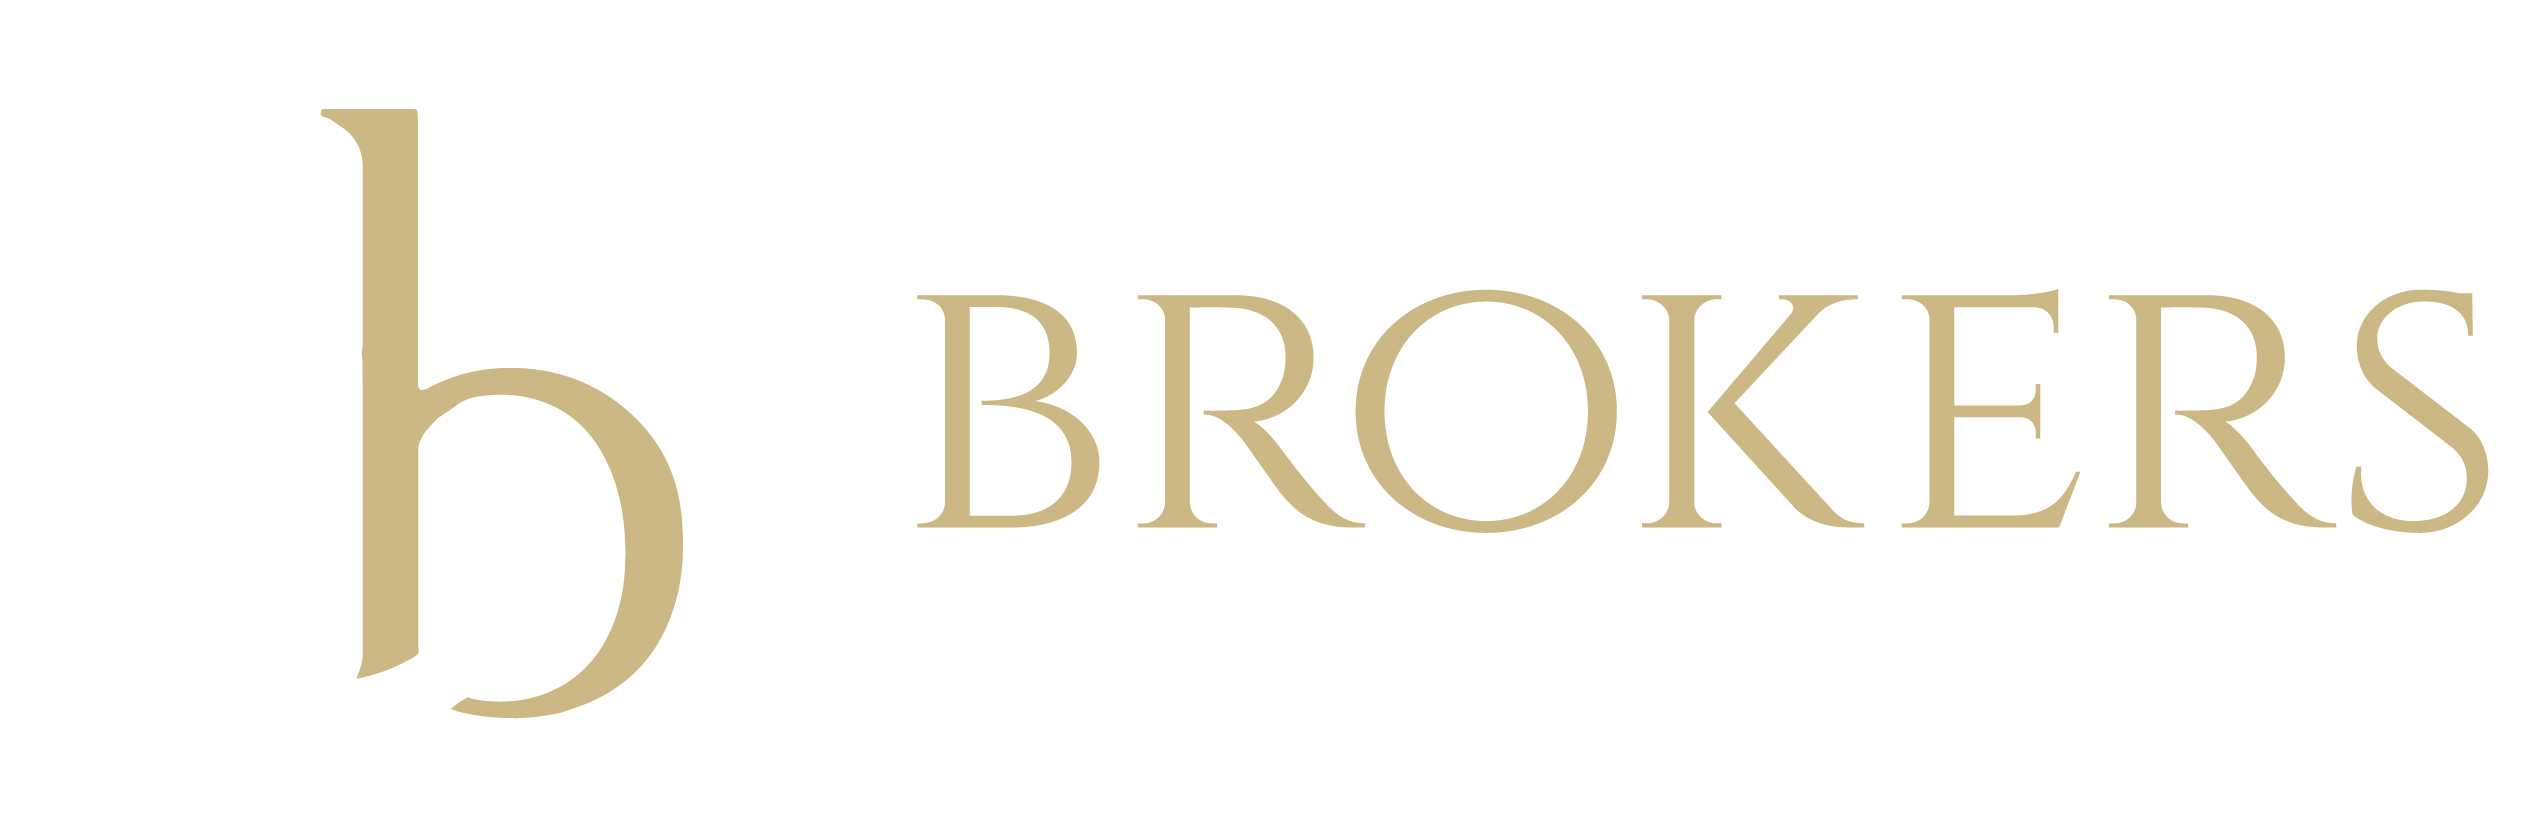 Bozeman Brokers Real Estate